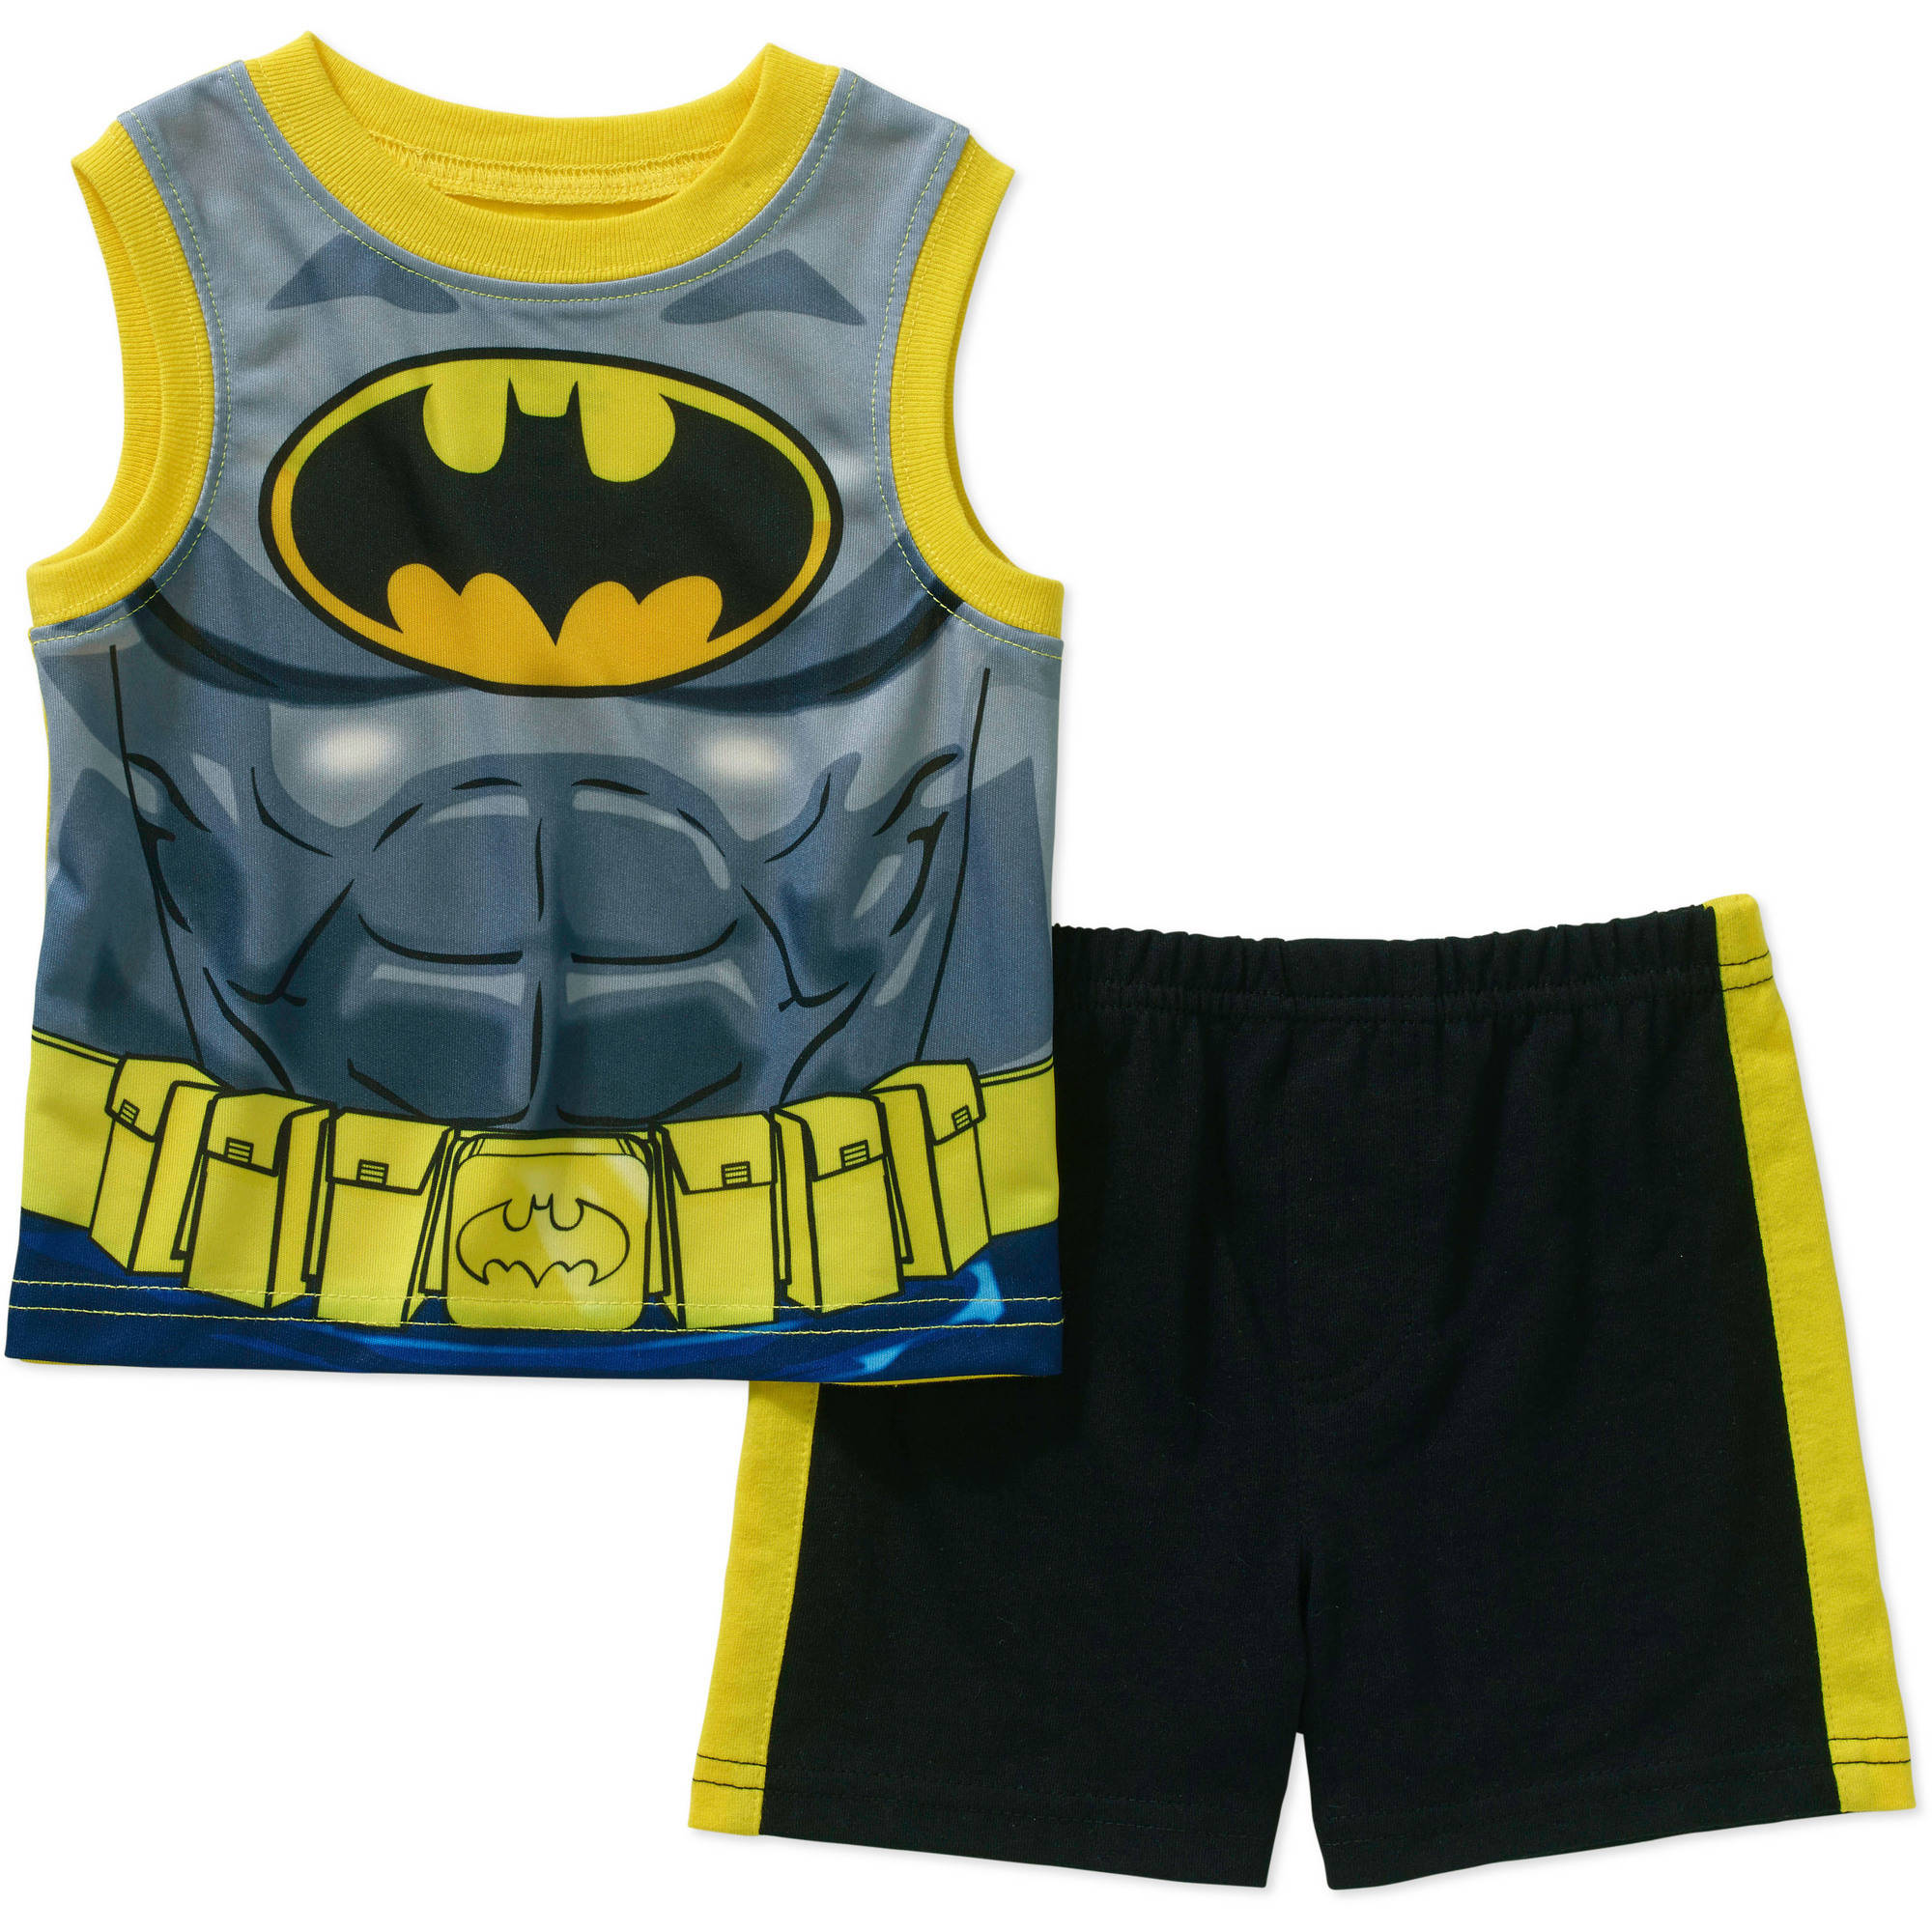 Batman Newborn Baby Boy Muscle Tank and Short 2 pc Set